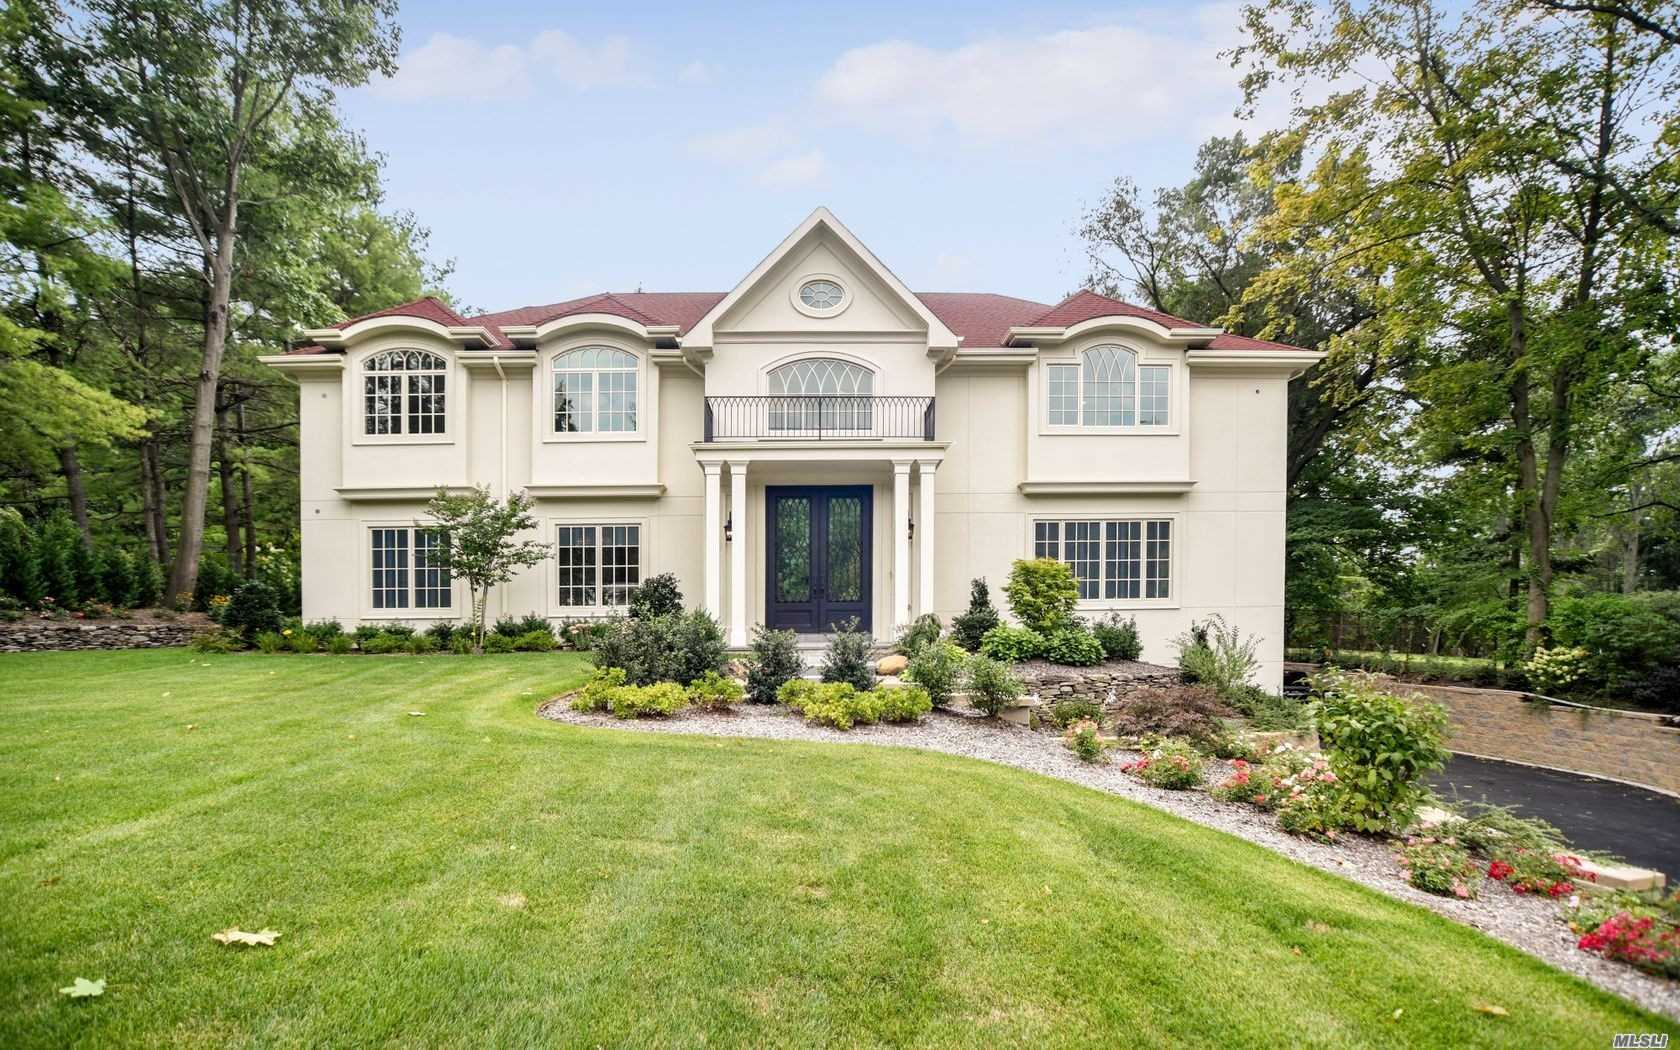 Magnificent New Custom-Built 6800 Sqft C/H Colonial W/Winter Water Views And Architectural Details Thru-Out, Double Height Entry Foyer, High Ceilings, Custom Moldings, Marble & Wood Flrs. Grand Entertaining Lr, Banquet Size Dr, Den, Huge Gourmet Eik, 7 Large Brs, 5 Marble Bths, 3 Powders Rms, Radiant Heat In Kit + Foyer. Full Walk-Out Fin Lower Level With Movie Theatre & 2-Car Garage.